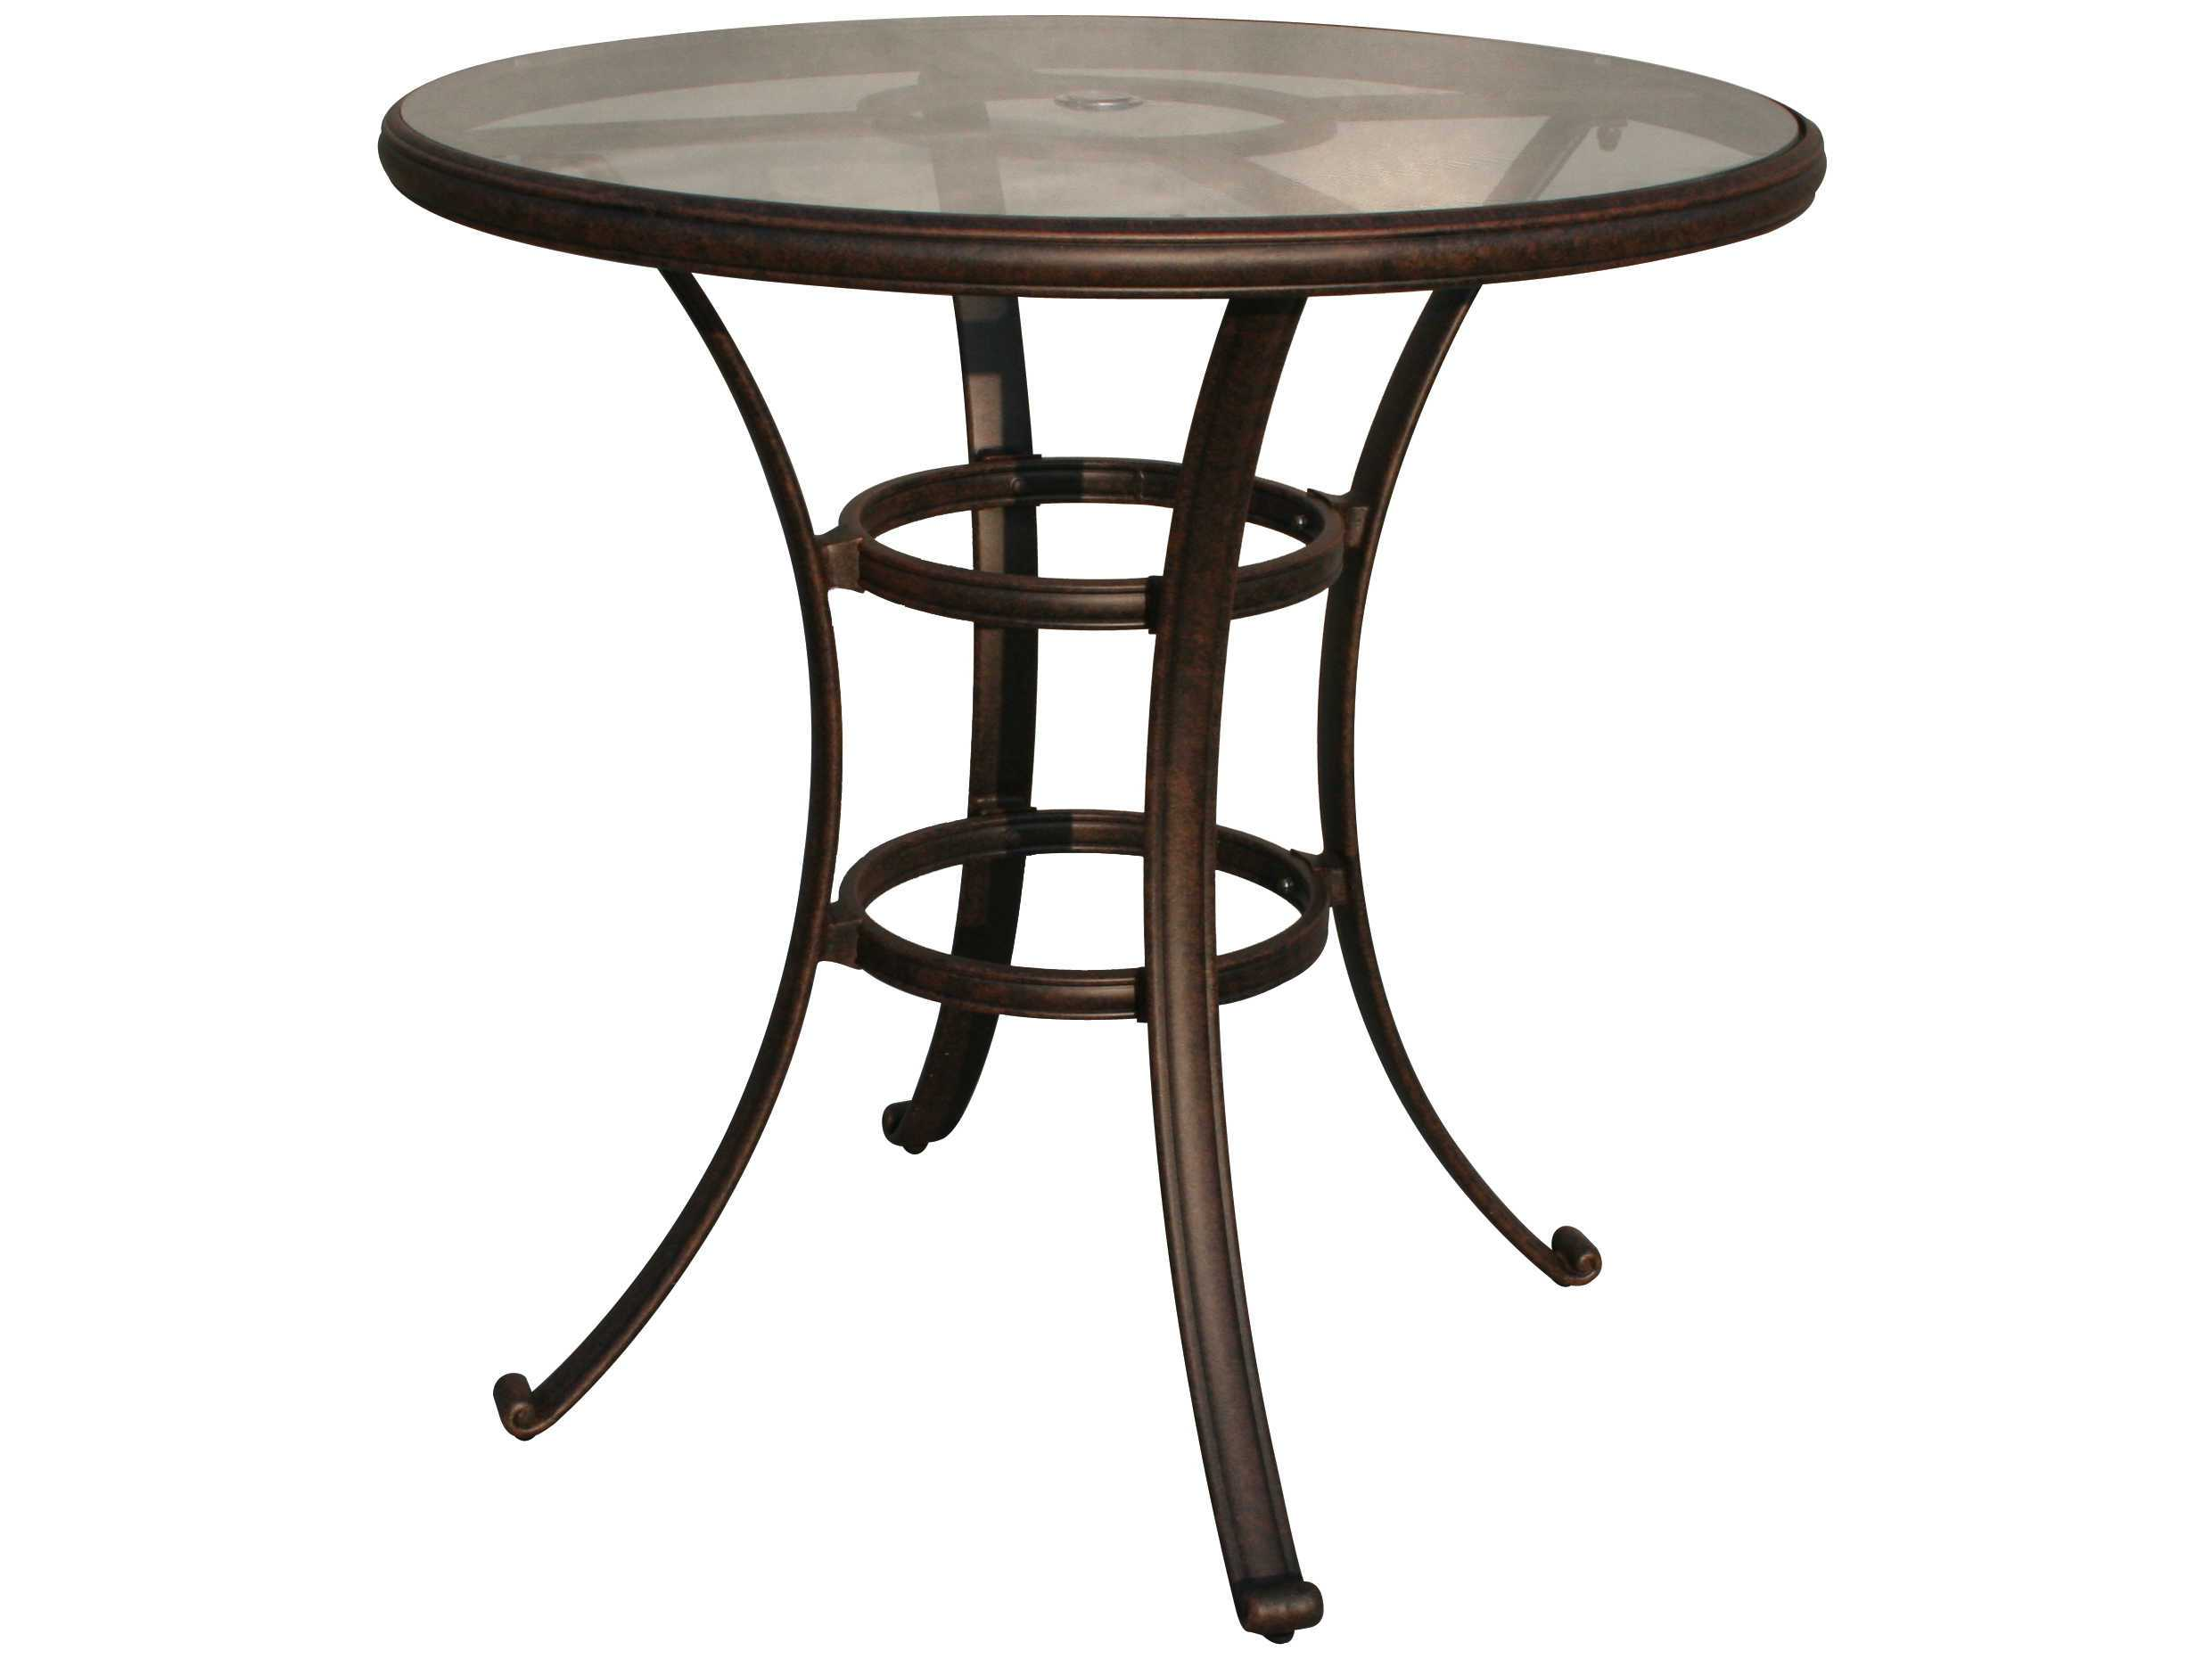 darlee outdoor living glass top cast aluminum antique bronze 42 round bar table dadl50f. Black Bedroom Furniture Sets. Home Design Ideas